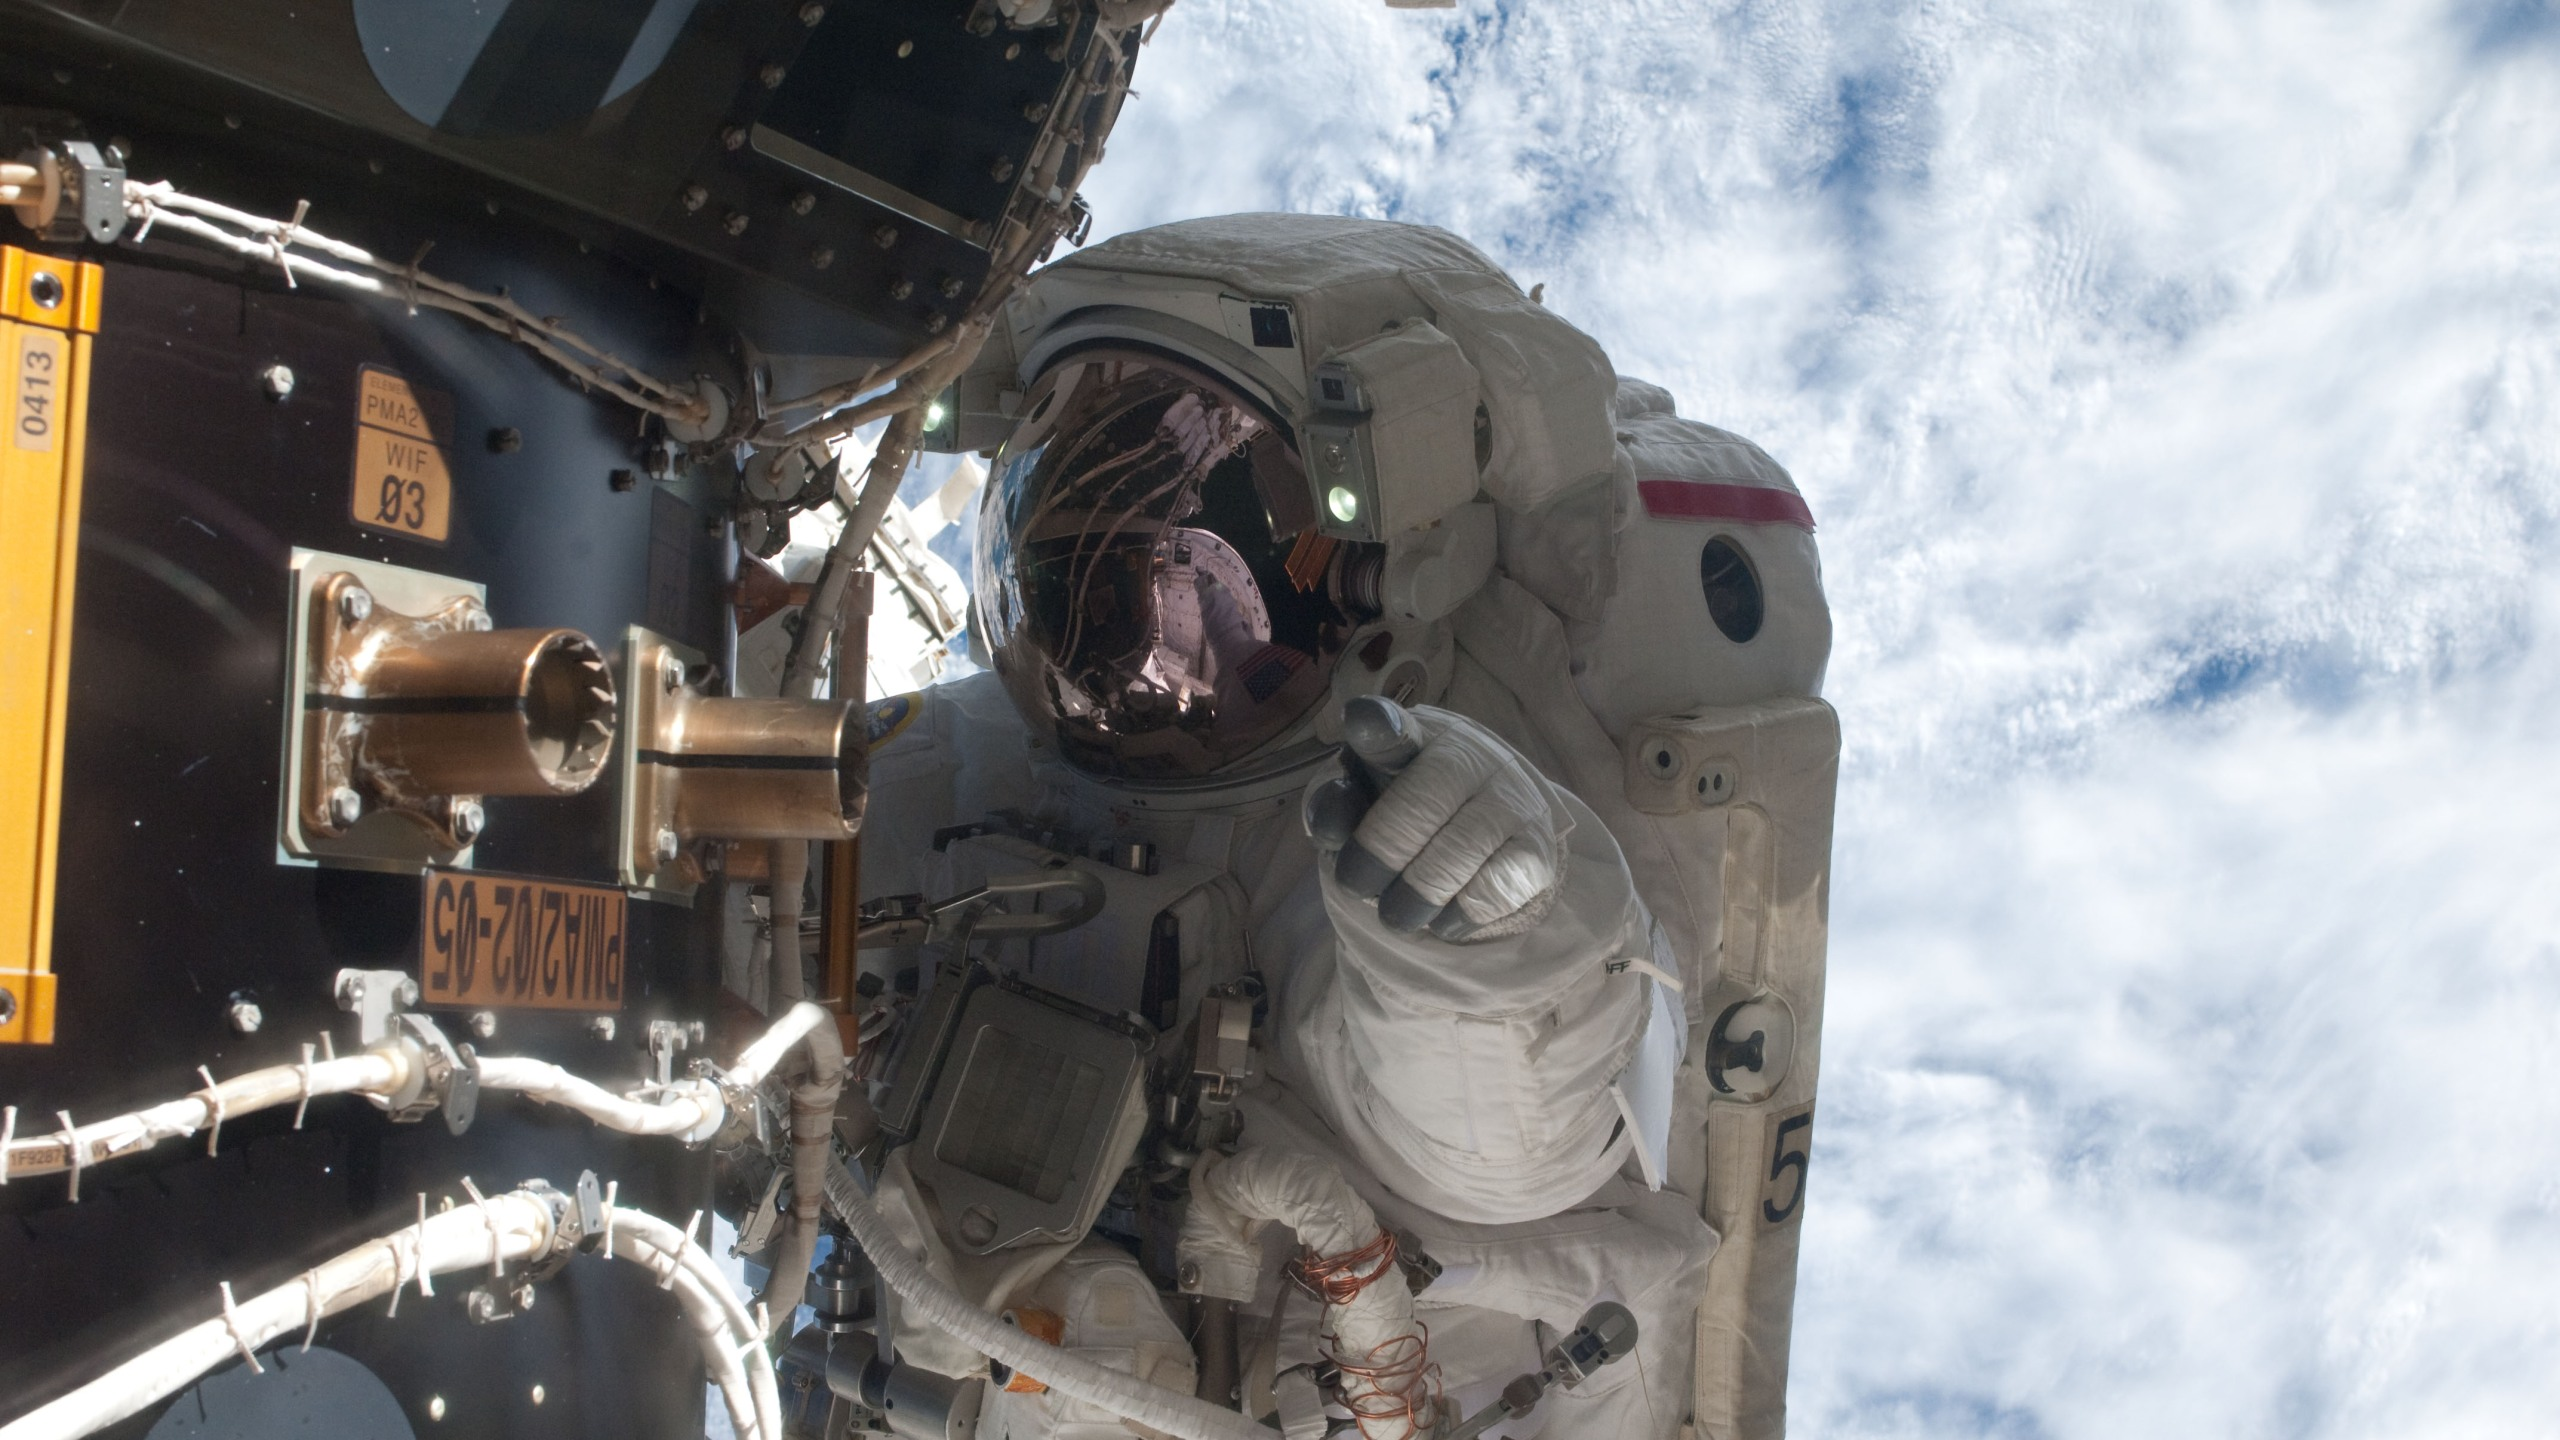 NASA_astronaut_Mike_Fossum_Atlantis_1535915243176.jpg